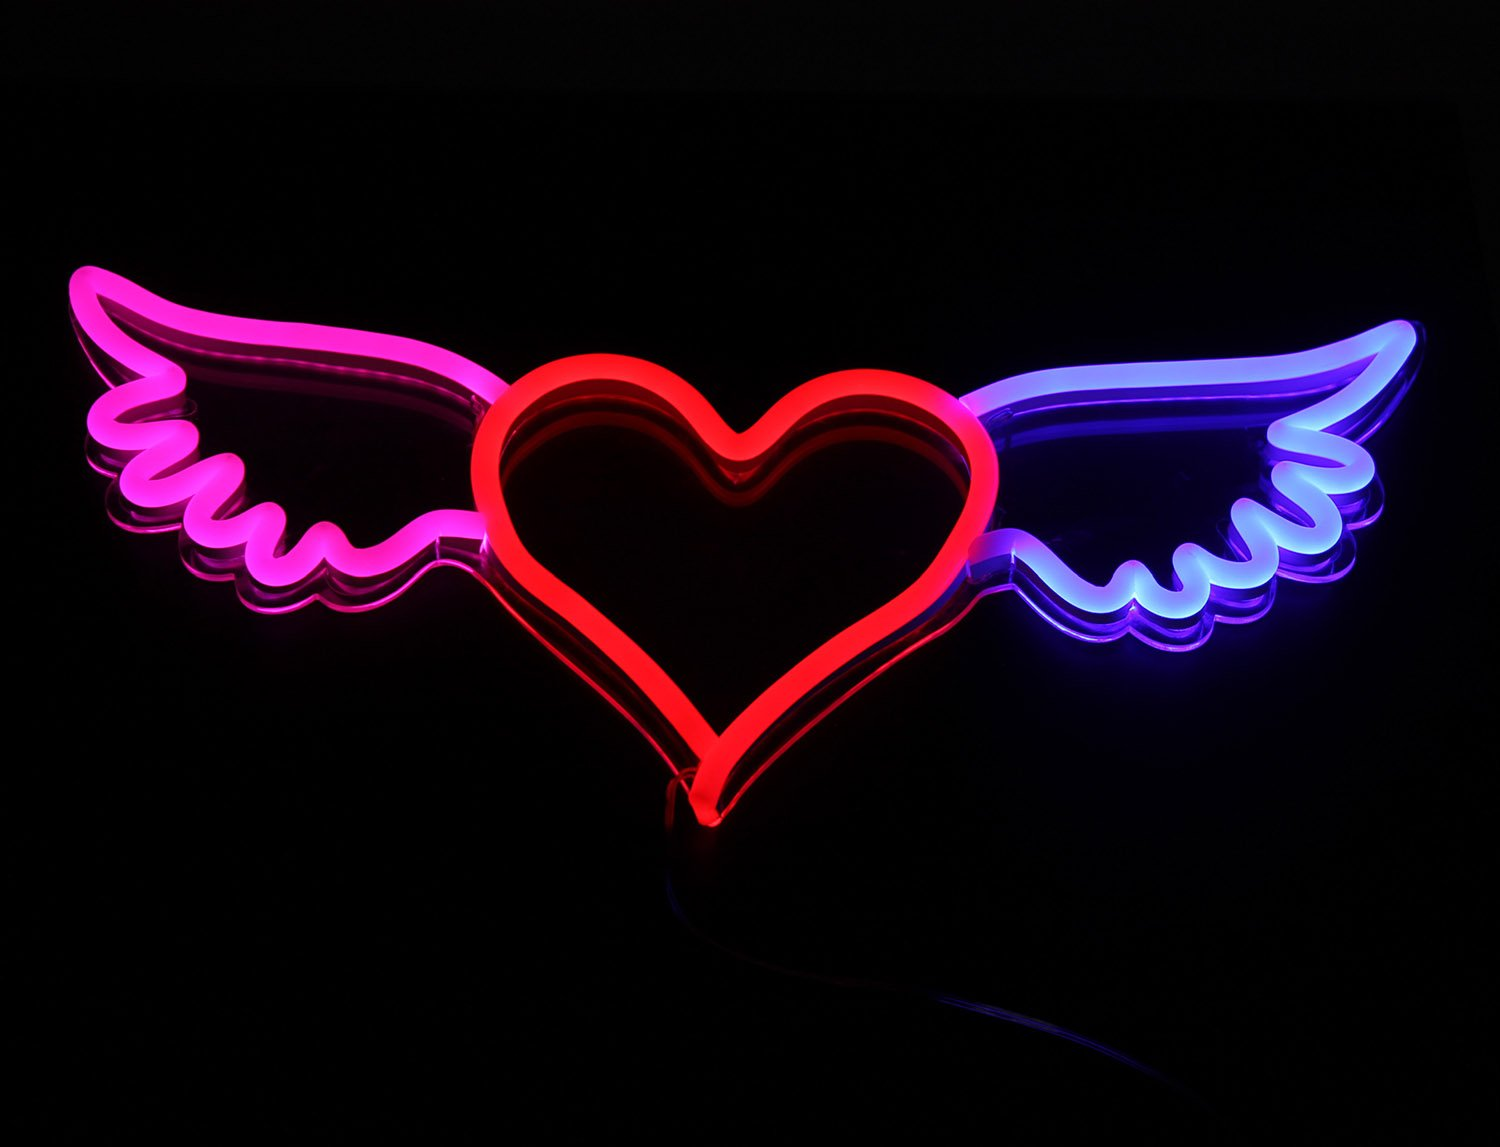 New Neon Sign Heart 'Heart with Wings' Cool LED Lamp Light 24''x 11.2'' For Home Bedroom Beer bar Pub Hotel Beach Recreational Game Room LED Neon Signs Handmade Designed By Vasten (Milky White Jacket)